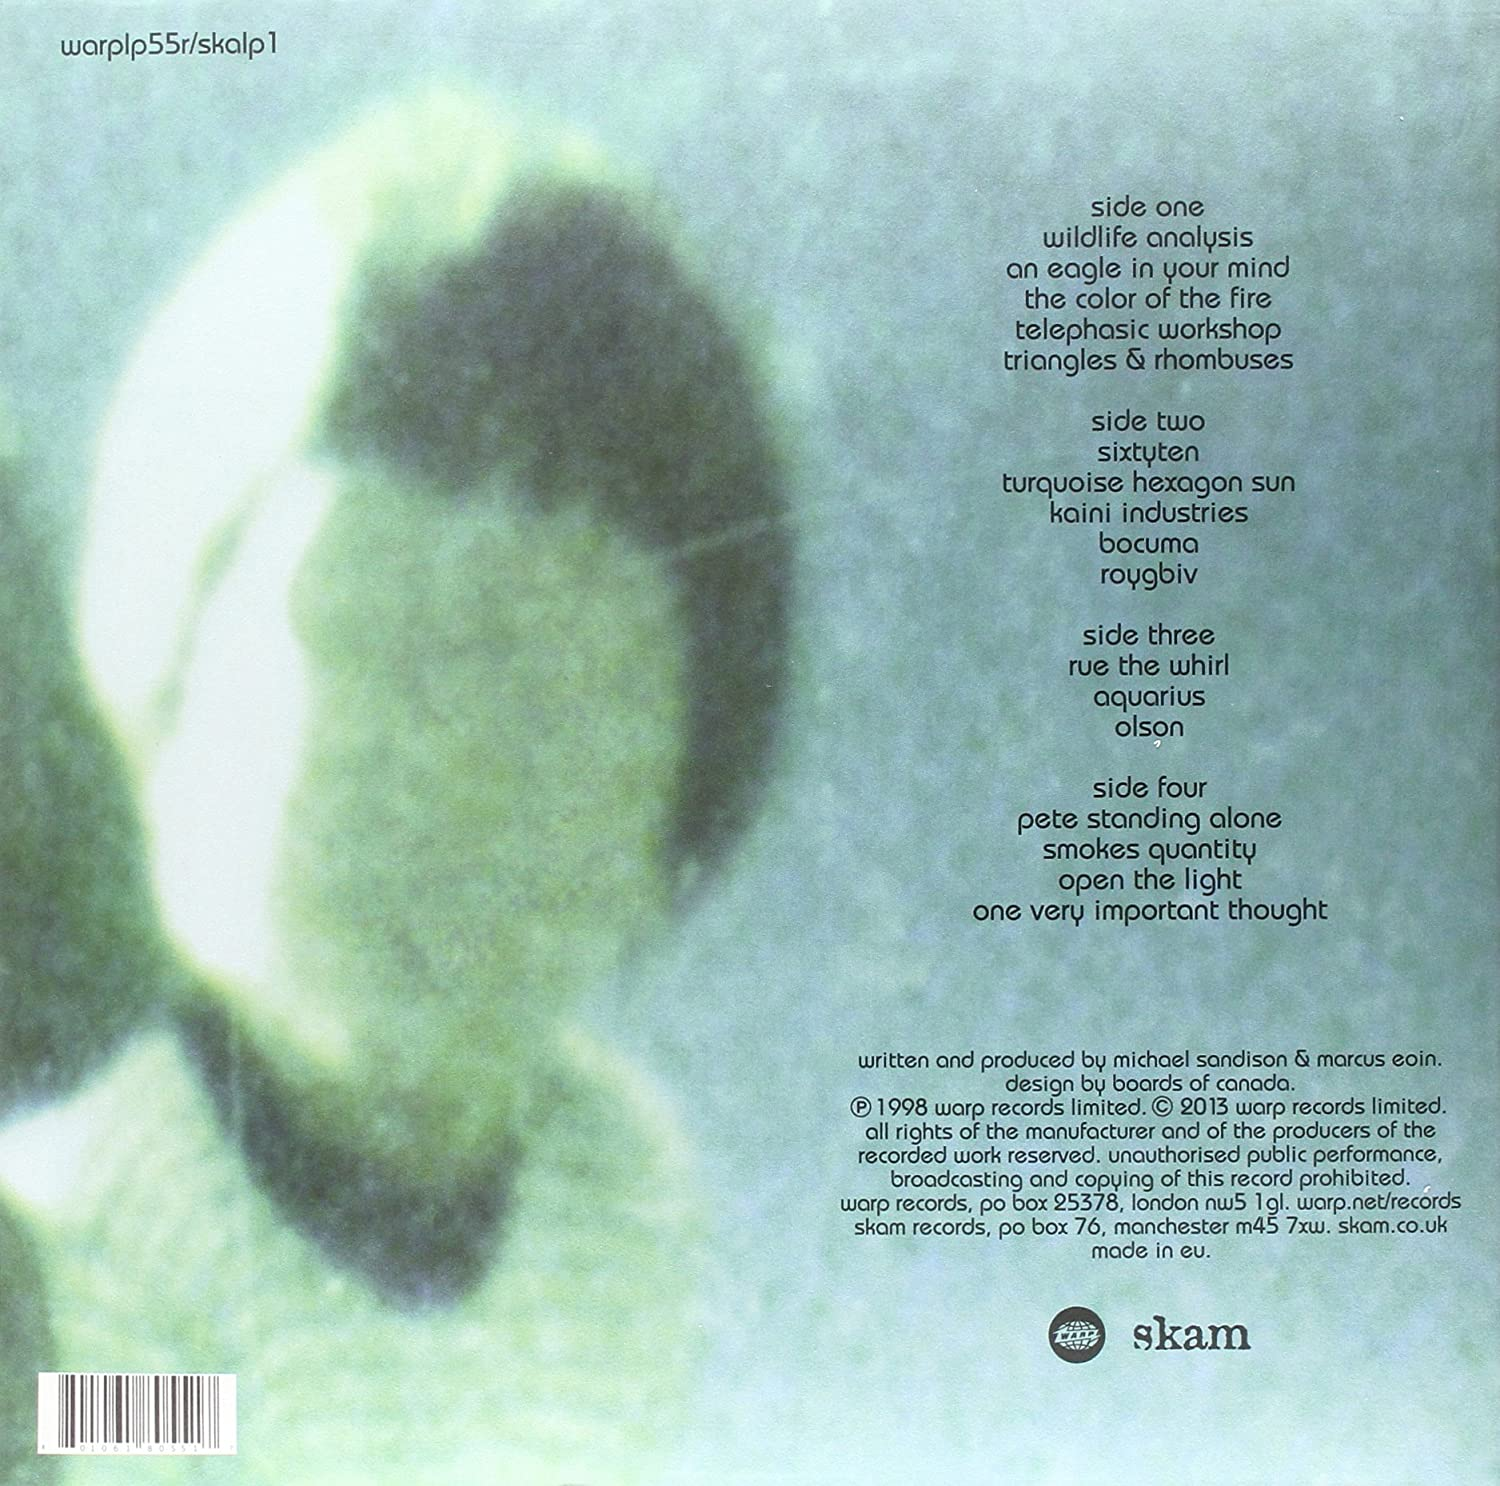 boards of canada discography 320